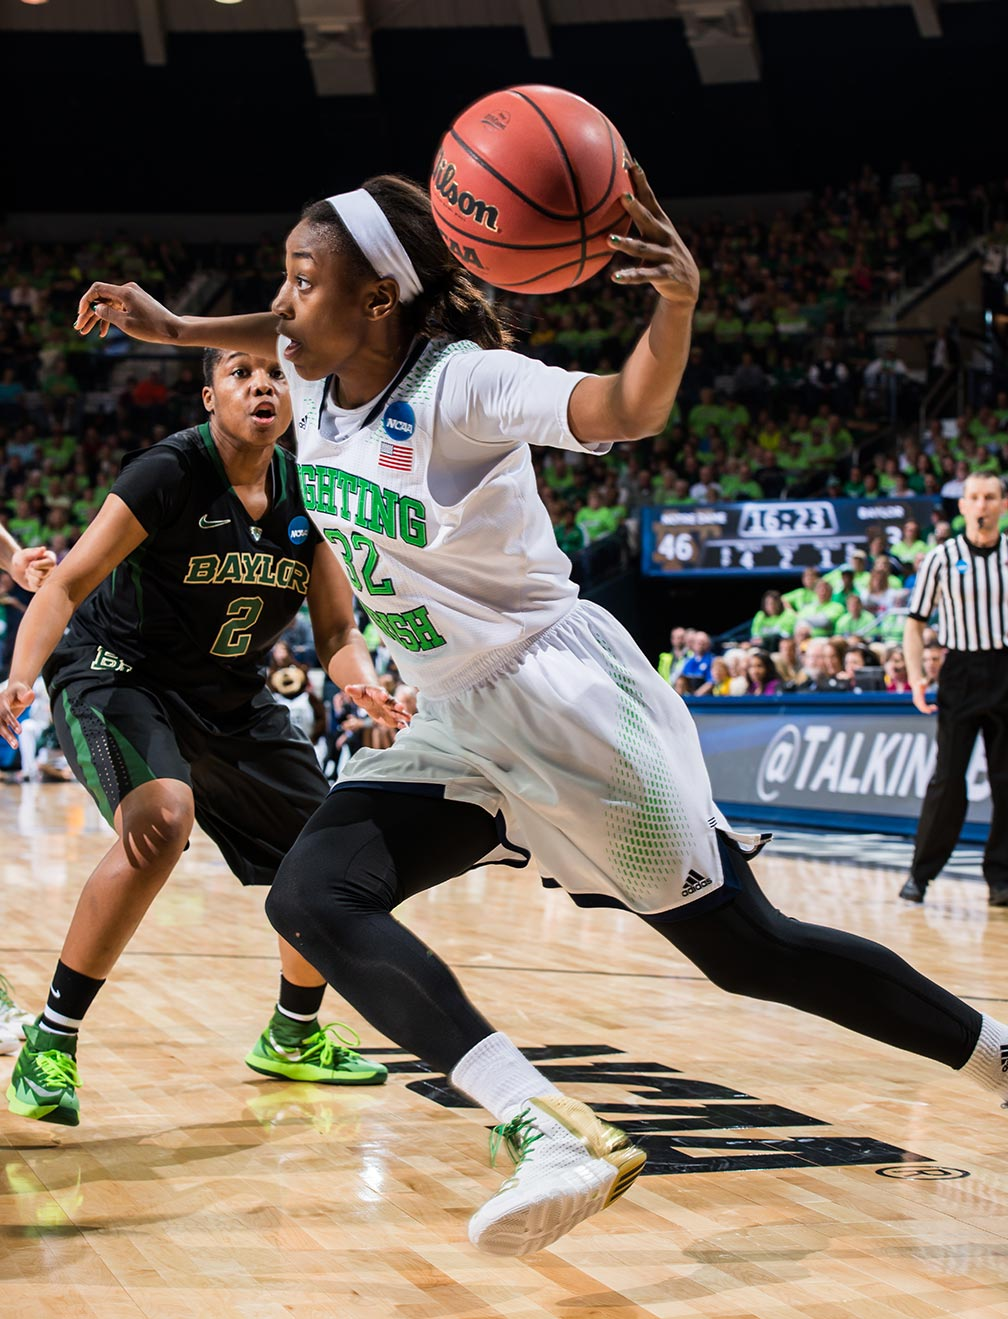 Mar 31, 2014; Jewel Loyd (32) drives to the basket as Baylor Bears guard Niya Johnson (2) defends in the regional final of the 2014 NCAA Tournament. Notre Dame won 88-69. Photo by Matt Cashore